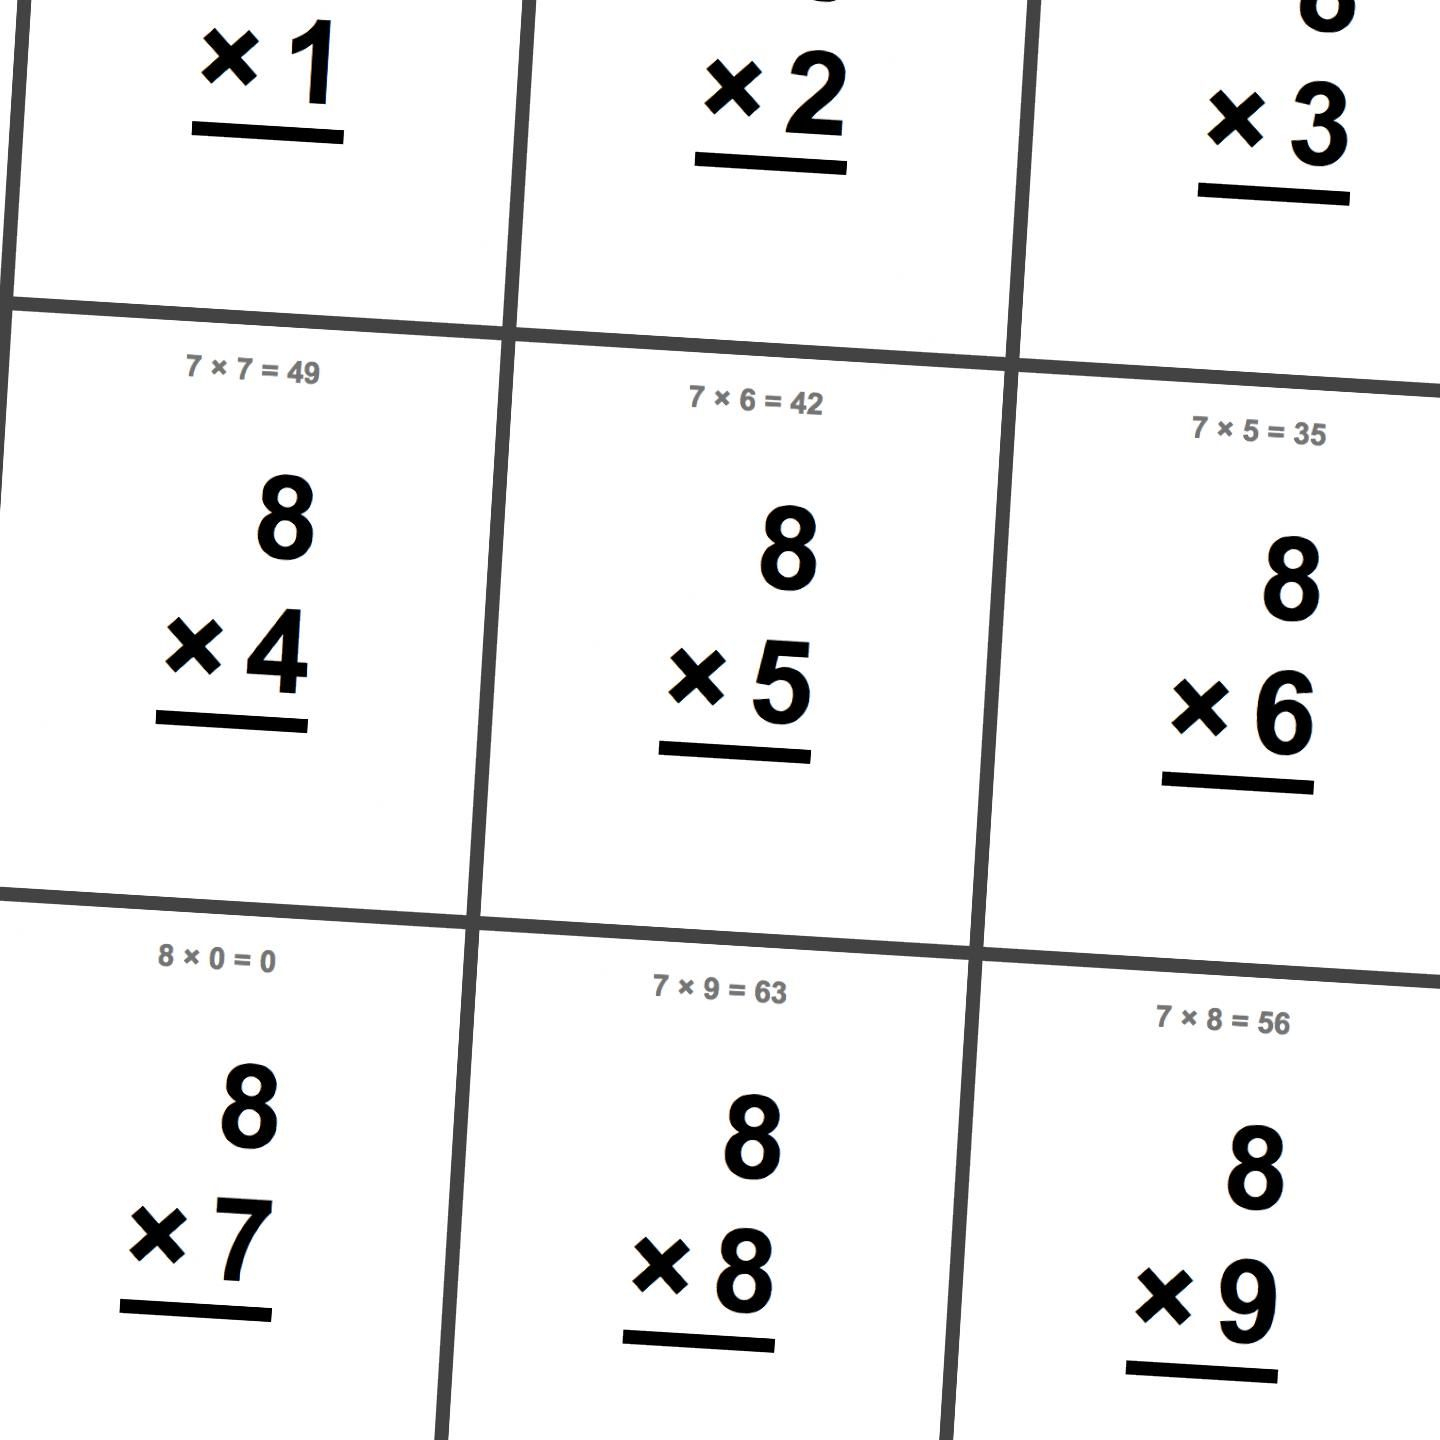 Free Printable Flash Cards For Multiplication Math Facts in Printable Multiplication Facts Cards